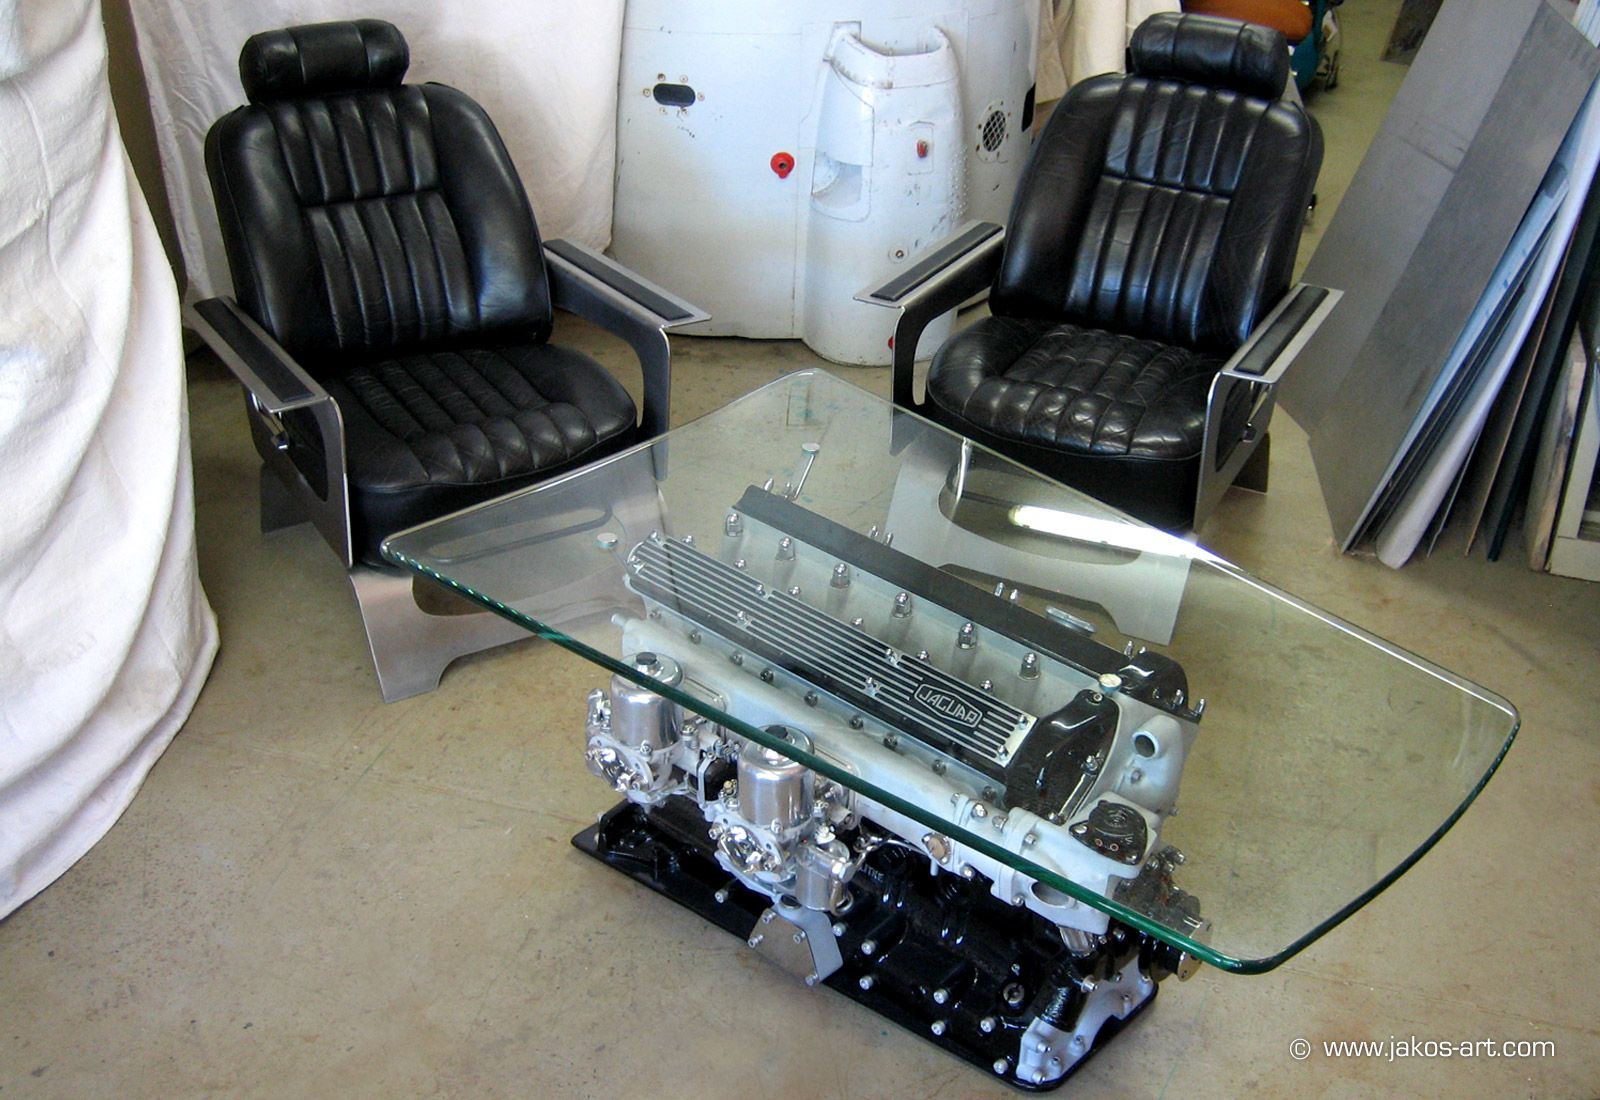 Les 25 meilleures id es de la cat gorie table basse moteur sur pinterest table basse de moteur - Table basse moteur voiture ...